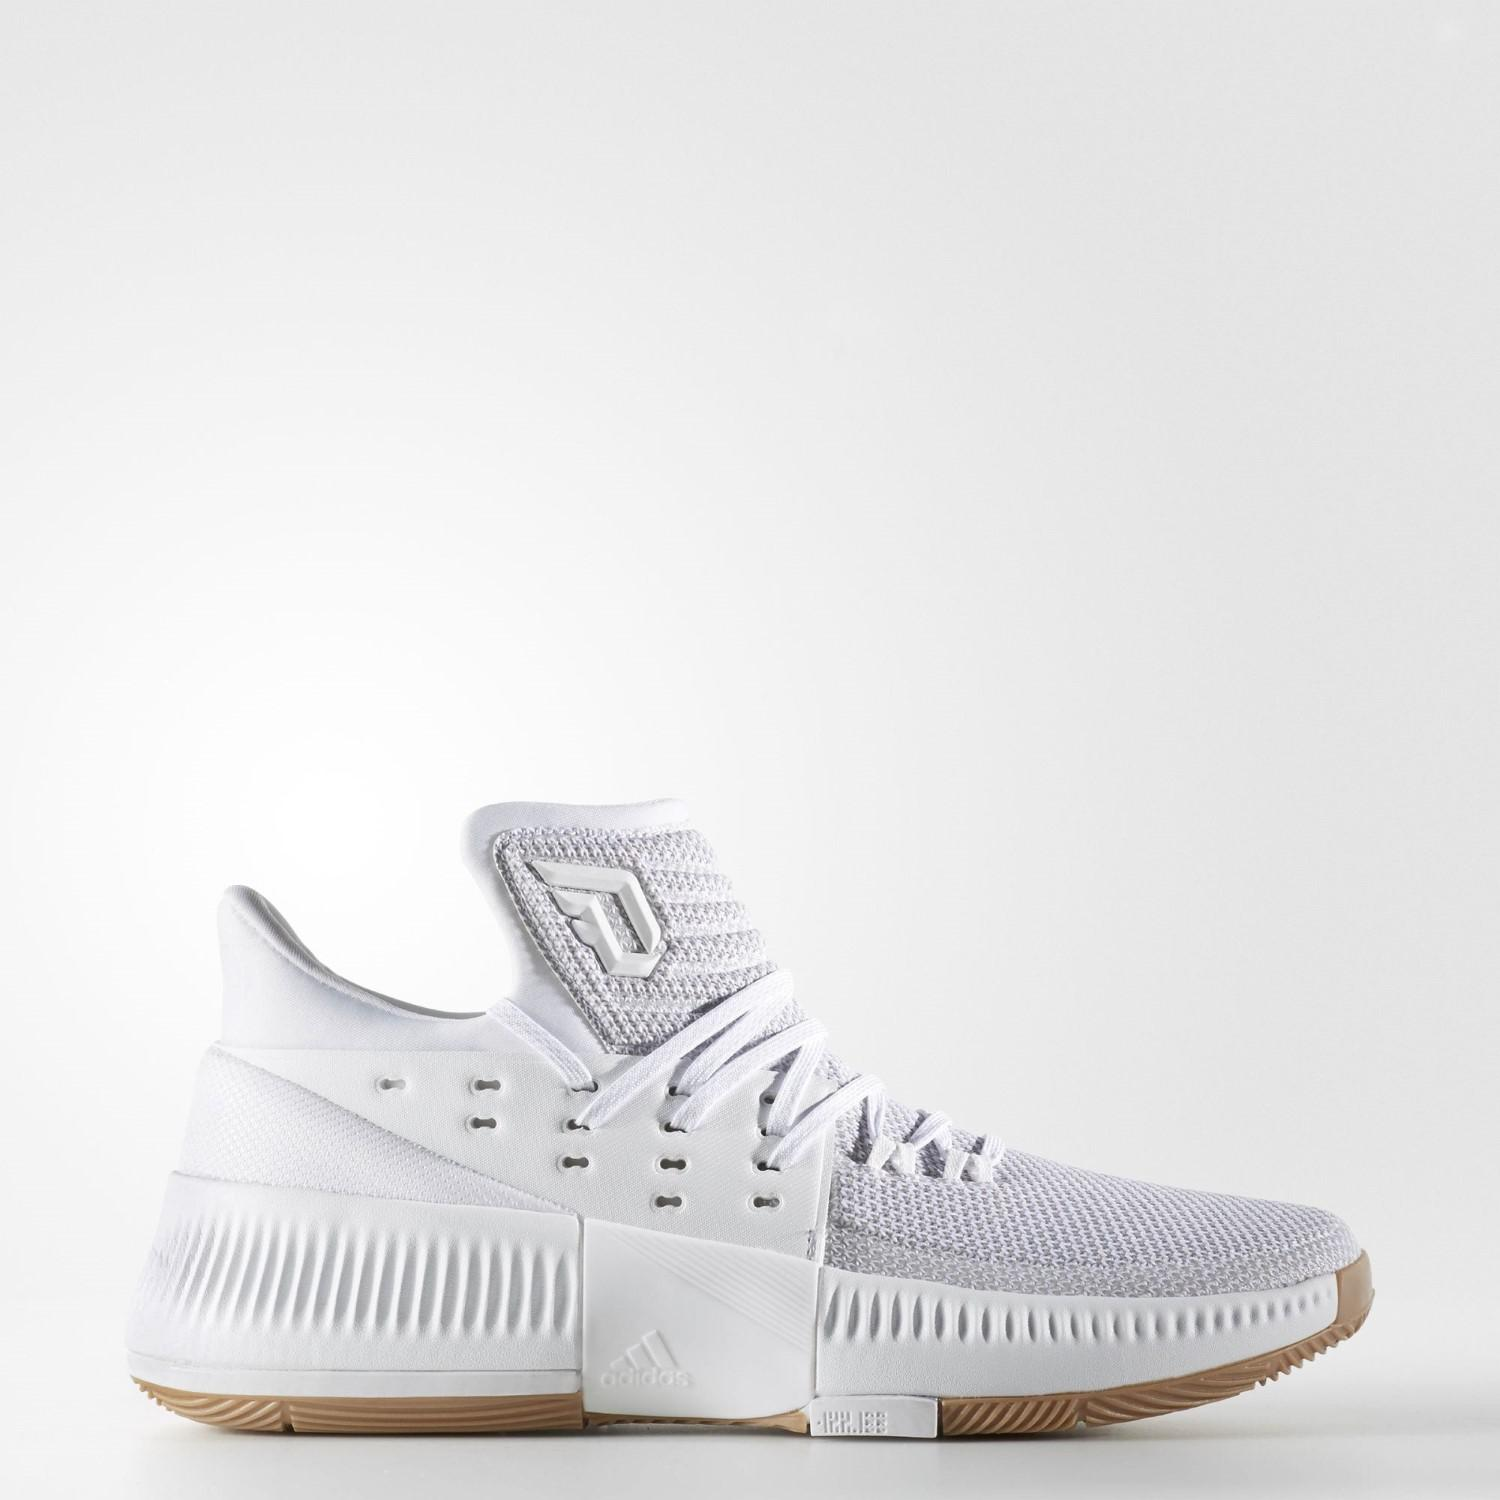 separation shoes efb4f 91e56 Lyst - Adidas Dame 3 Shoe Basketball 6.5 in White for Men